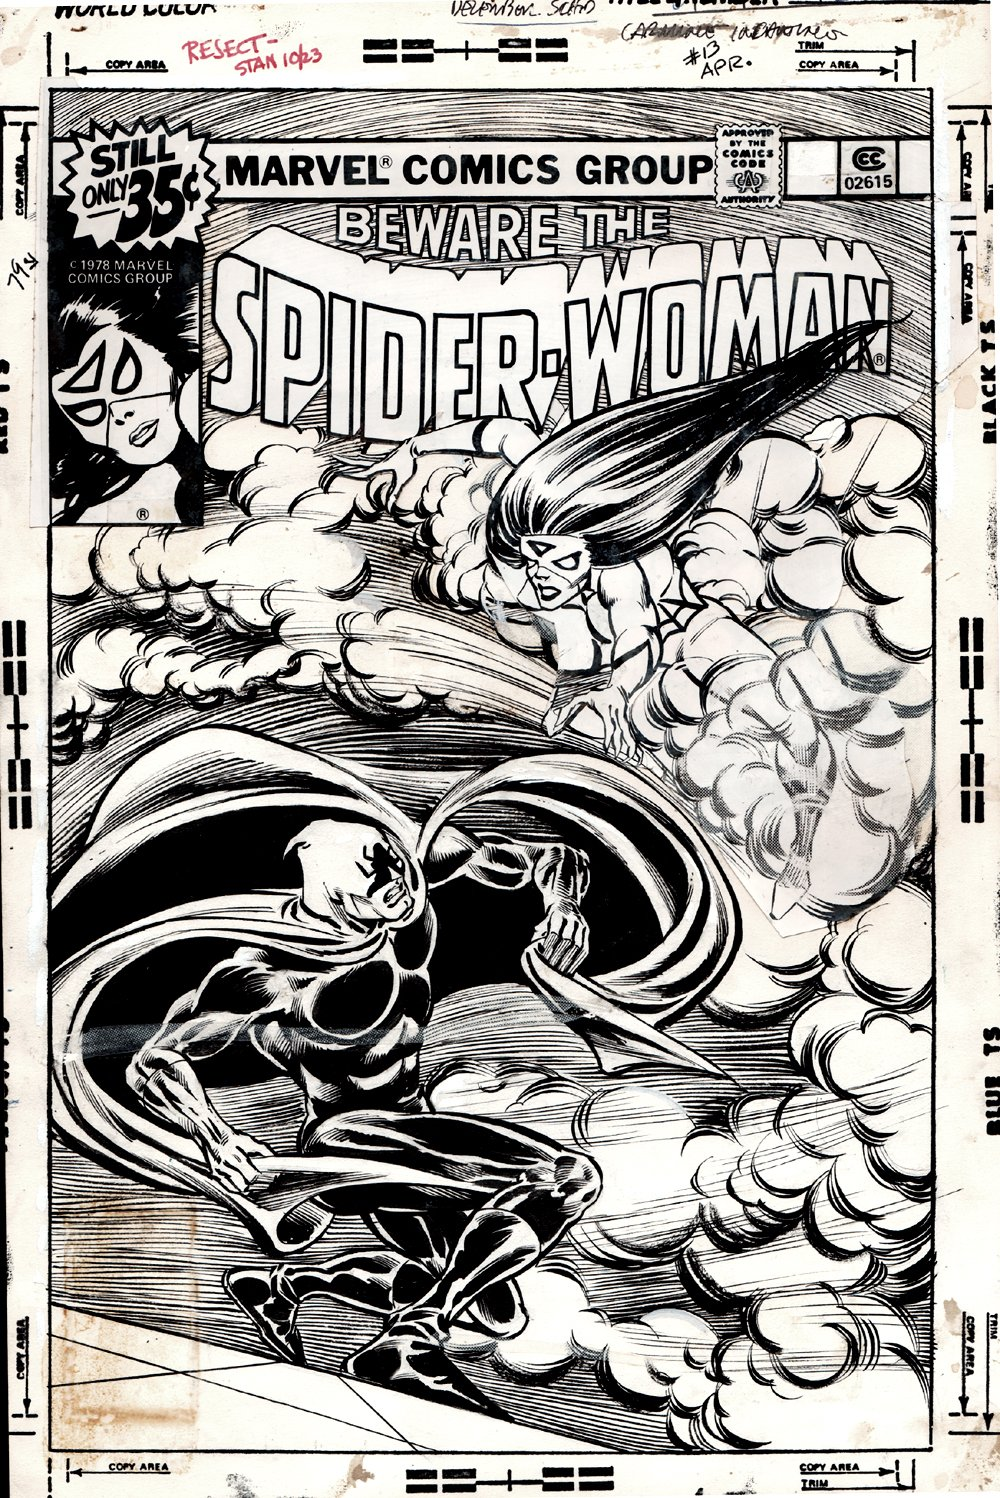 Spider-Woman #13 Unused Cover (1978)